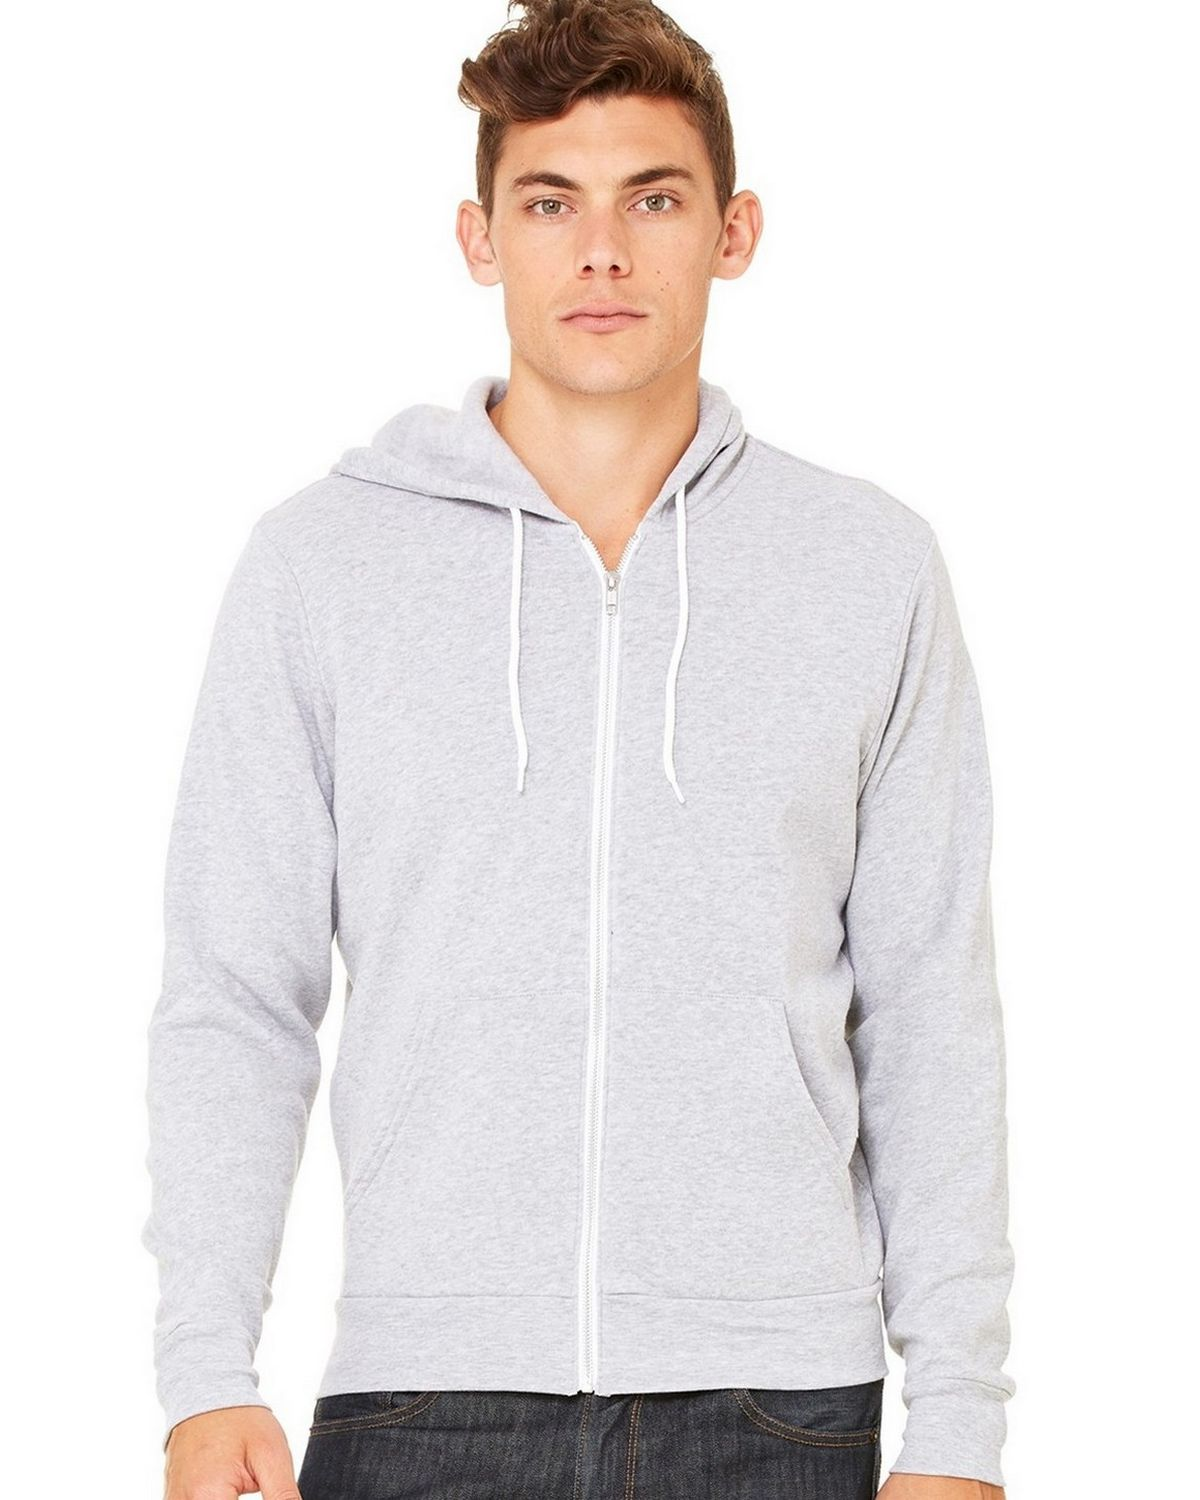 Bella + Canvas C3739 Unisex Full-Zip Hoodie - Heather True Royal - XL C3739